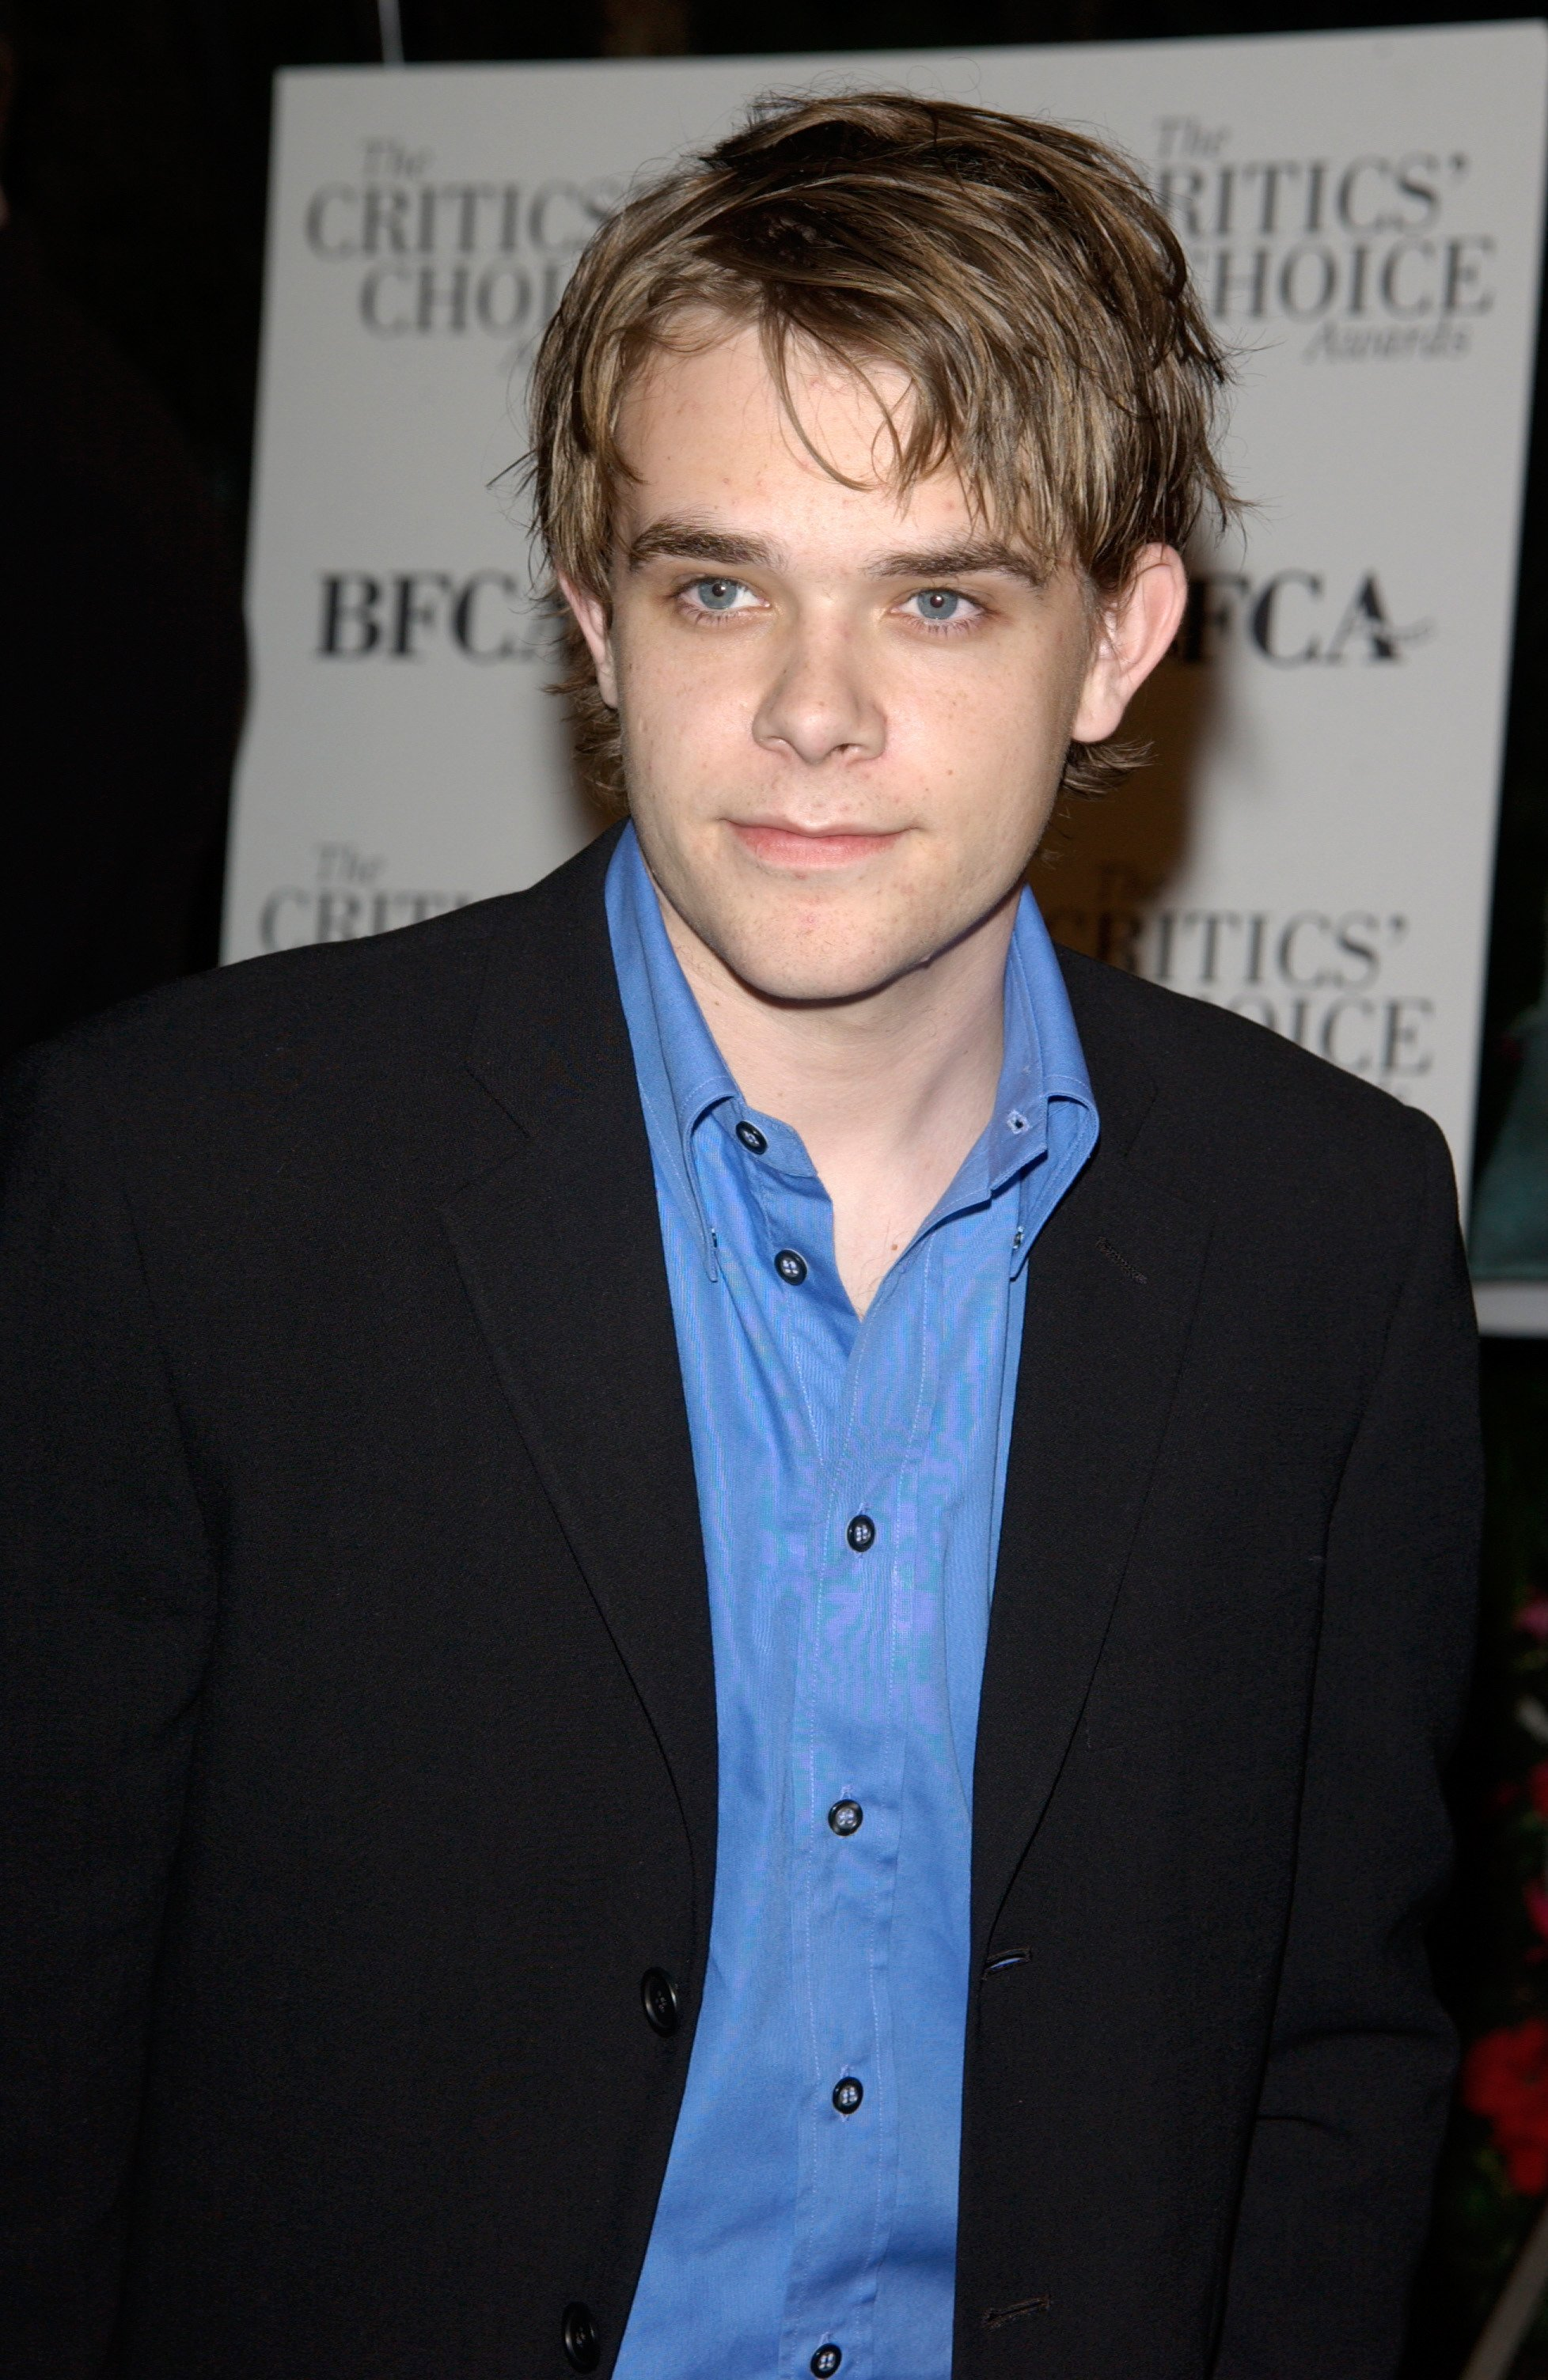 Nick Stahl at the 7th Annual Critics Choice Awards at the Beverly Hills Hotel on June 11, 2002 in California | Photo: Shutterstock